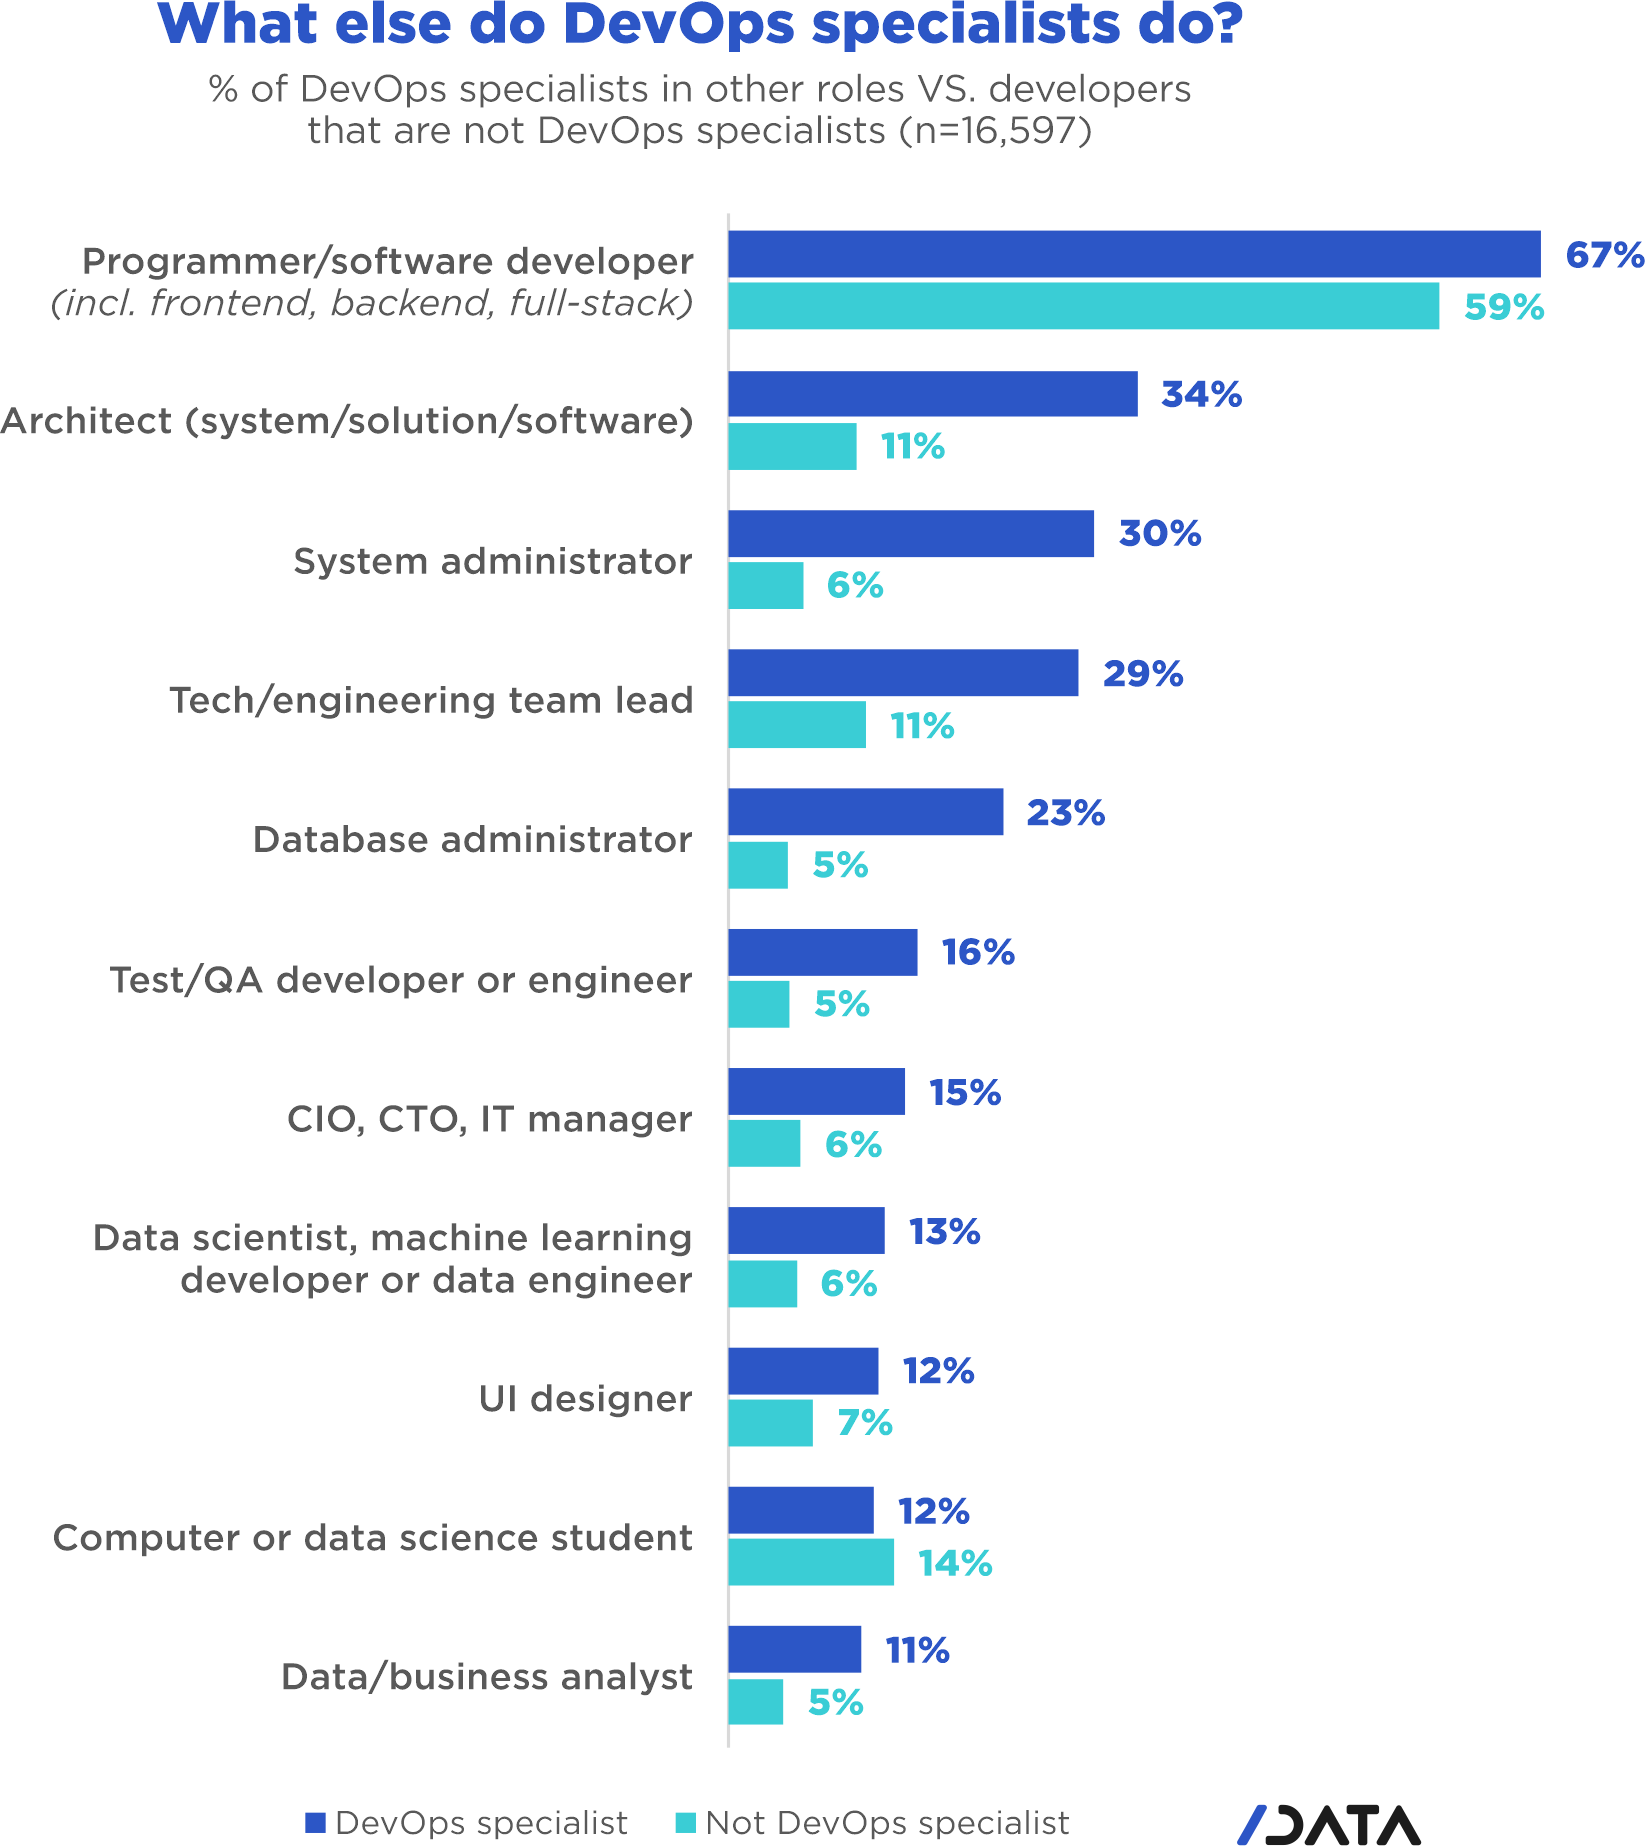 DevOps CI/CD usage trends - What else do DevOps specialists do? % of DevOps specialists in other roles vs developers that are not DevOps specialists